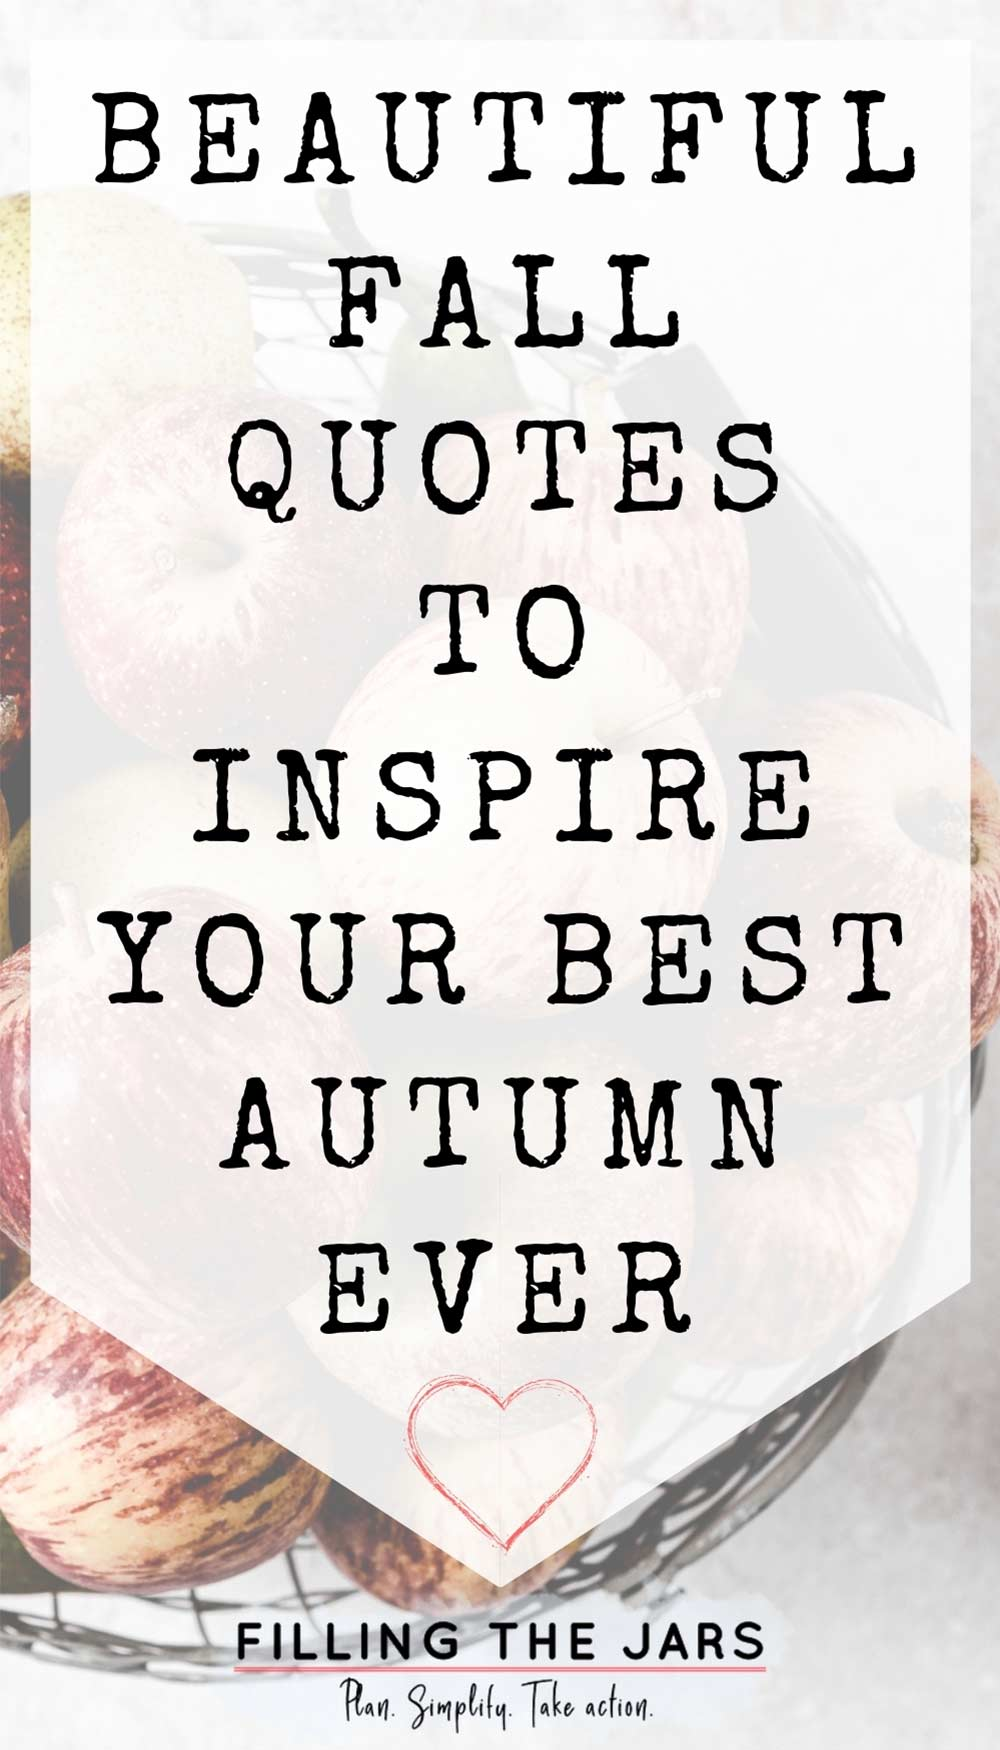 Text beautiful fall quotes to inspire your best autumn on white background over image of top view of apples and pears in mesh bowl on white counter.